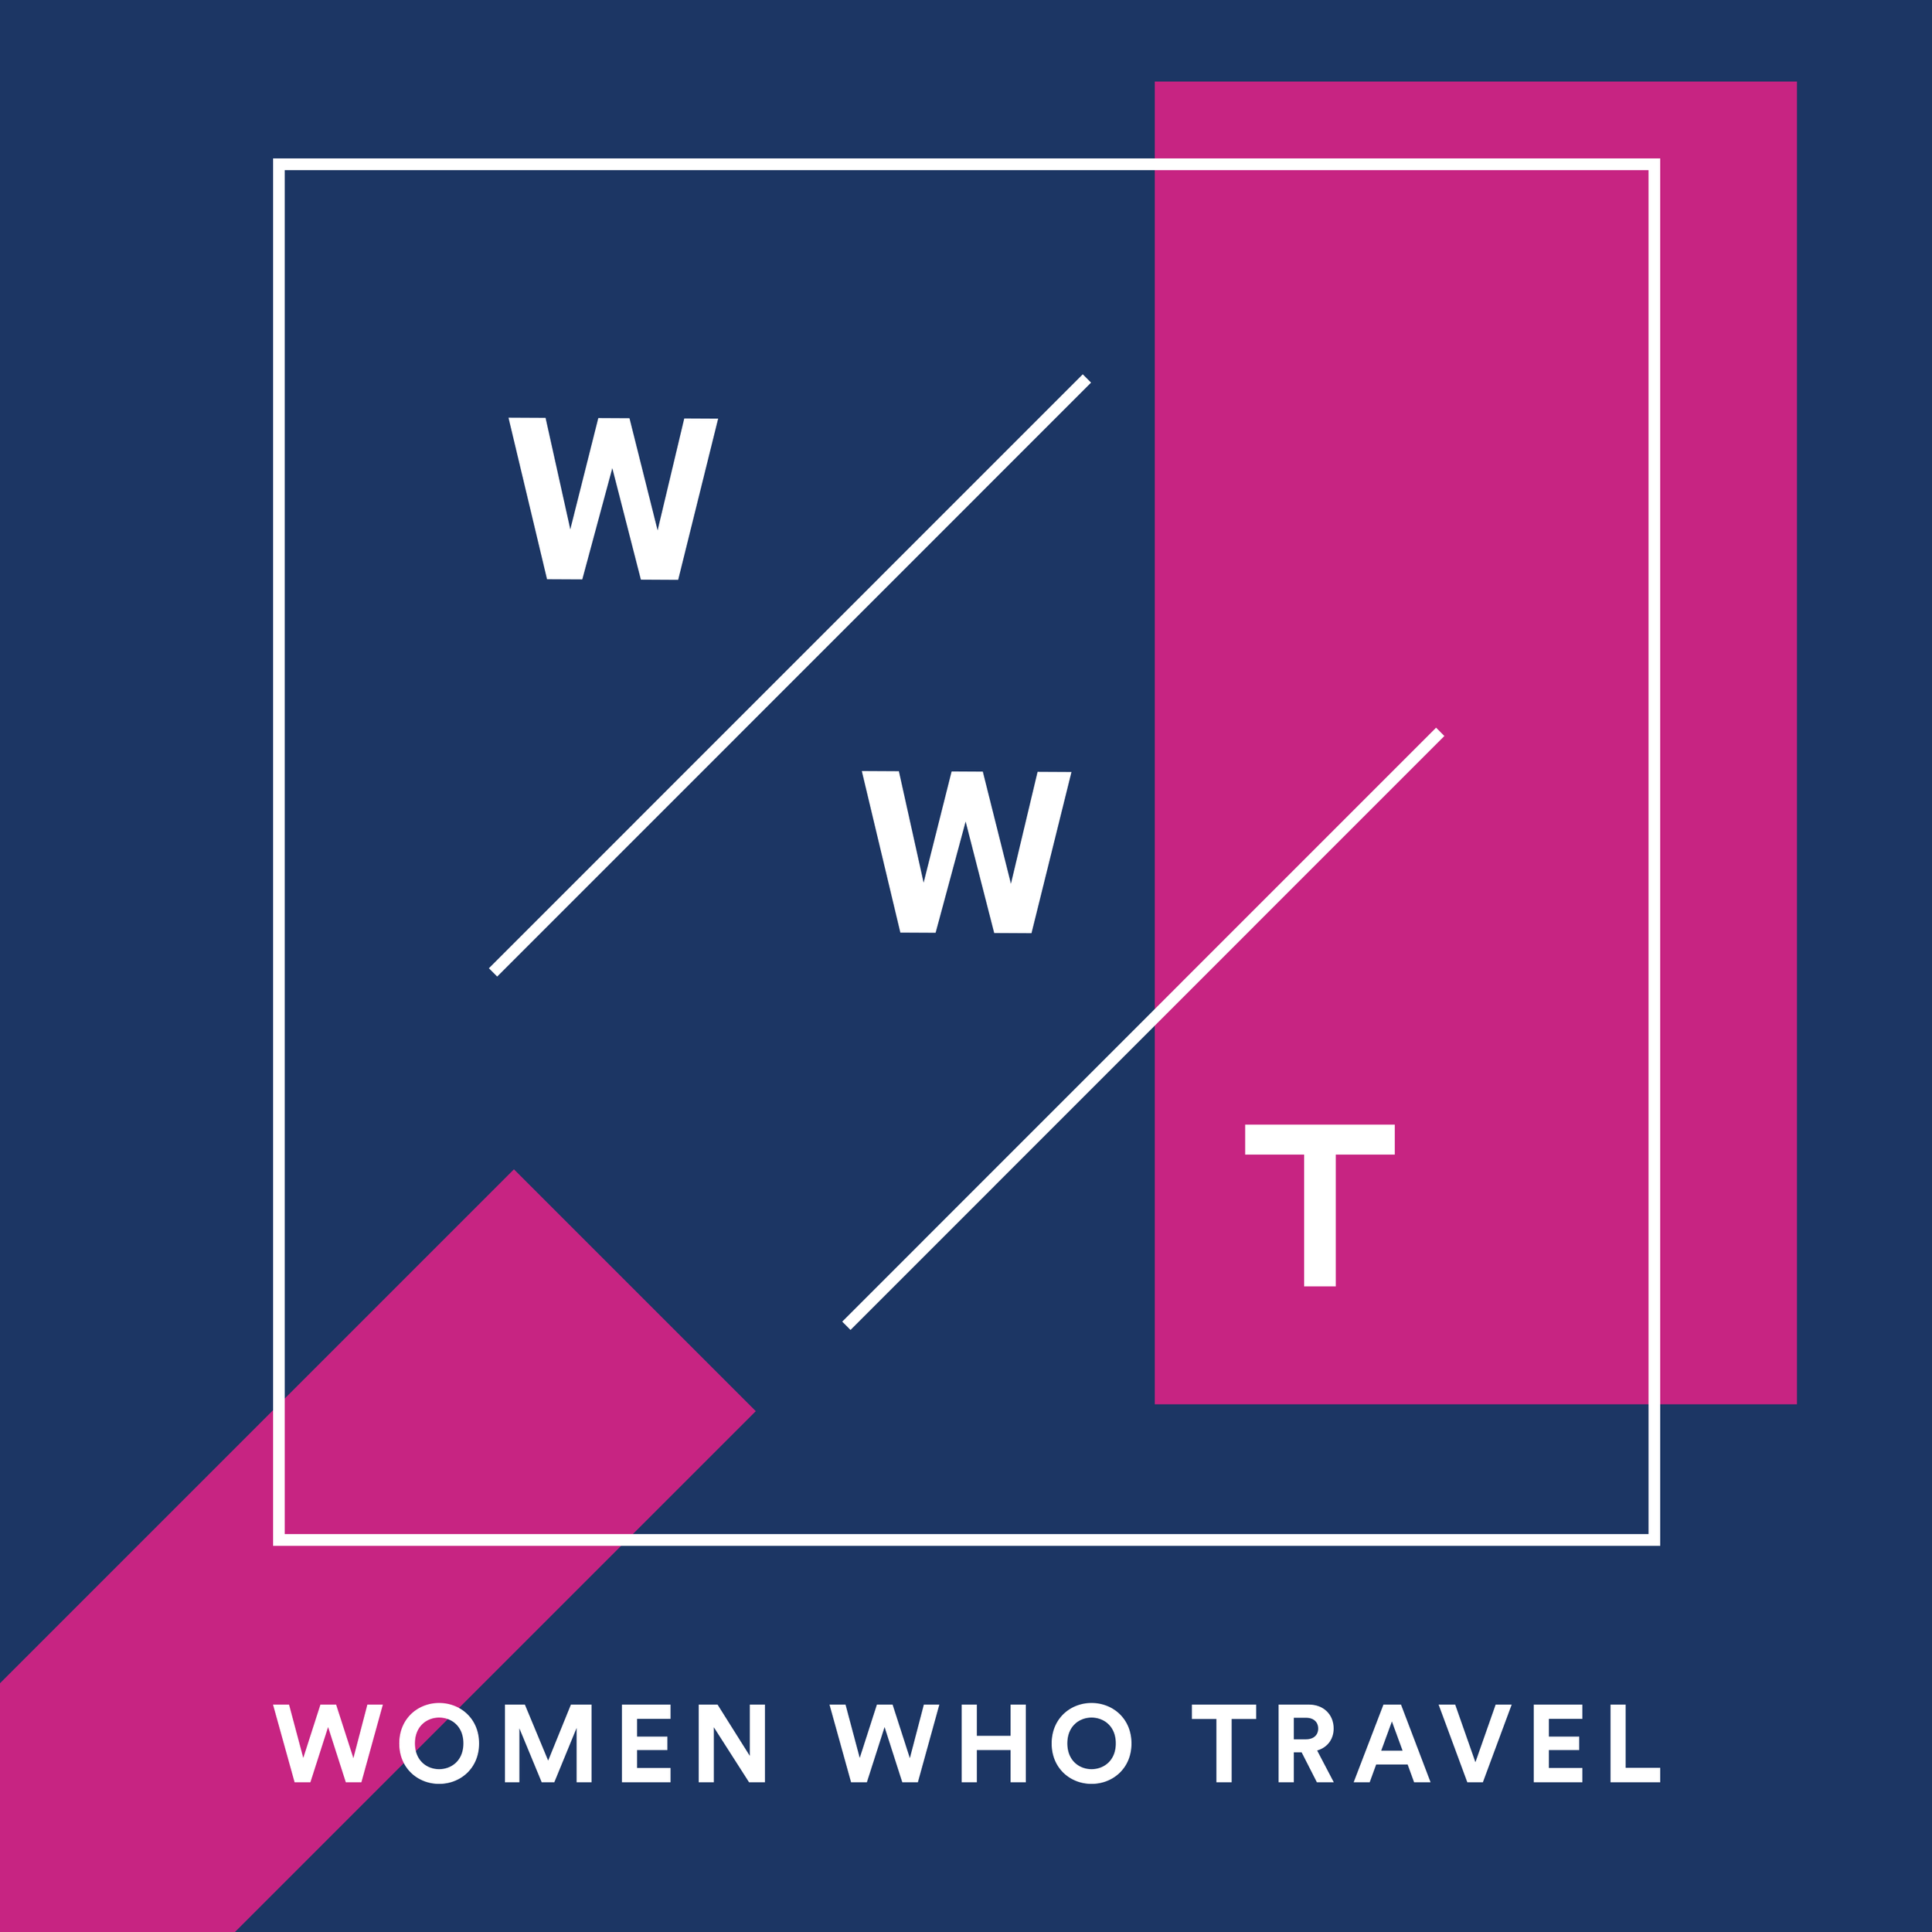 WOMEN WHO TRAVEL - Condé Nast Traveler editors Lale Arikoglu and Meredith Carey dissect the realities of traveling as a woman today and discuss a wide range of topics you've been wondering about but never knew where to find the answers. Their interviews and round table discussions cover topics like: where to travel this summer or how to tackle the daunting travel points game. The conversations are real and informative and bring together female movers and shakers in the travel industry.